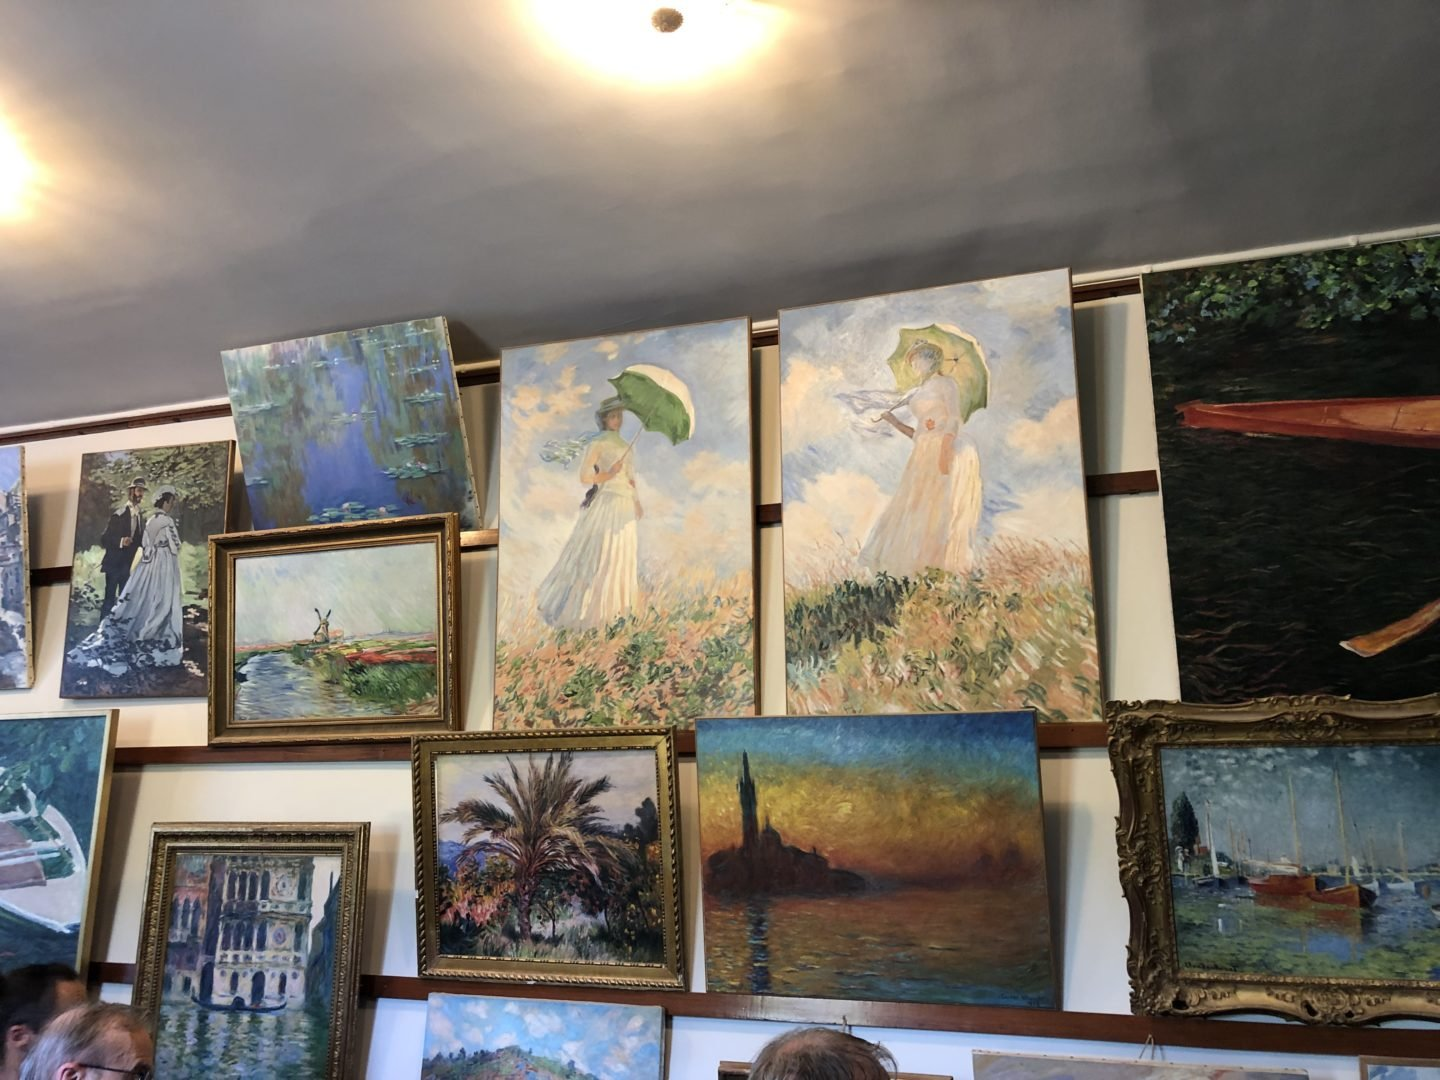 Monets studio Giverny, Are the paintings in Monets House real or copies? Although Monets collection of prints and ornaments are still on display the much rarer paintings in museums and the paintings you see today are copies of the originals.